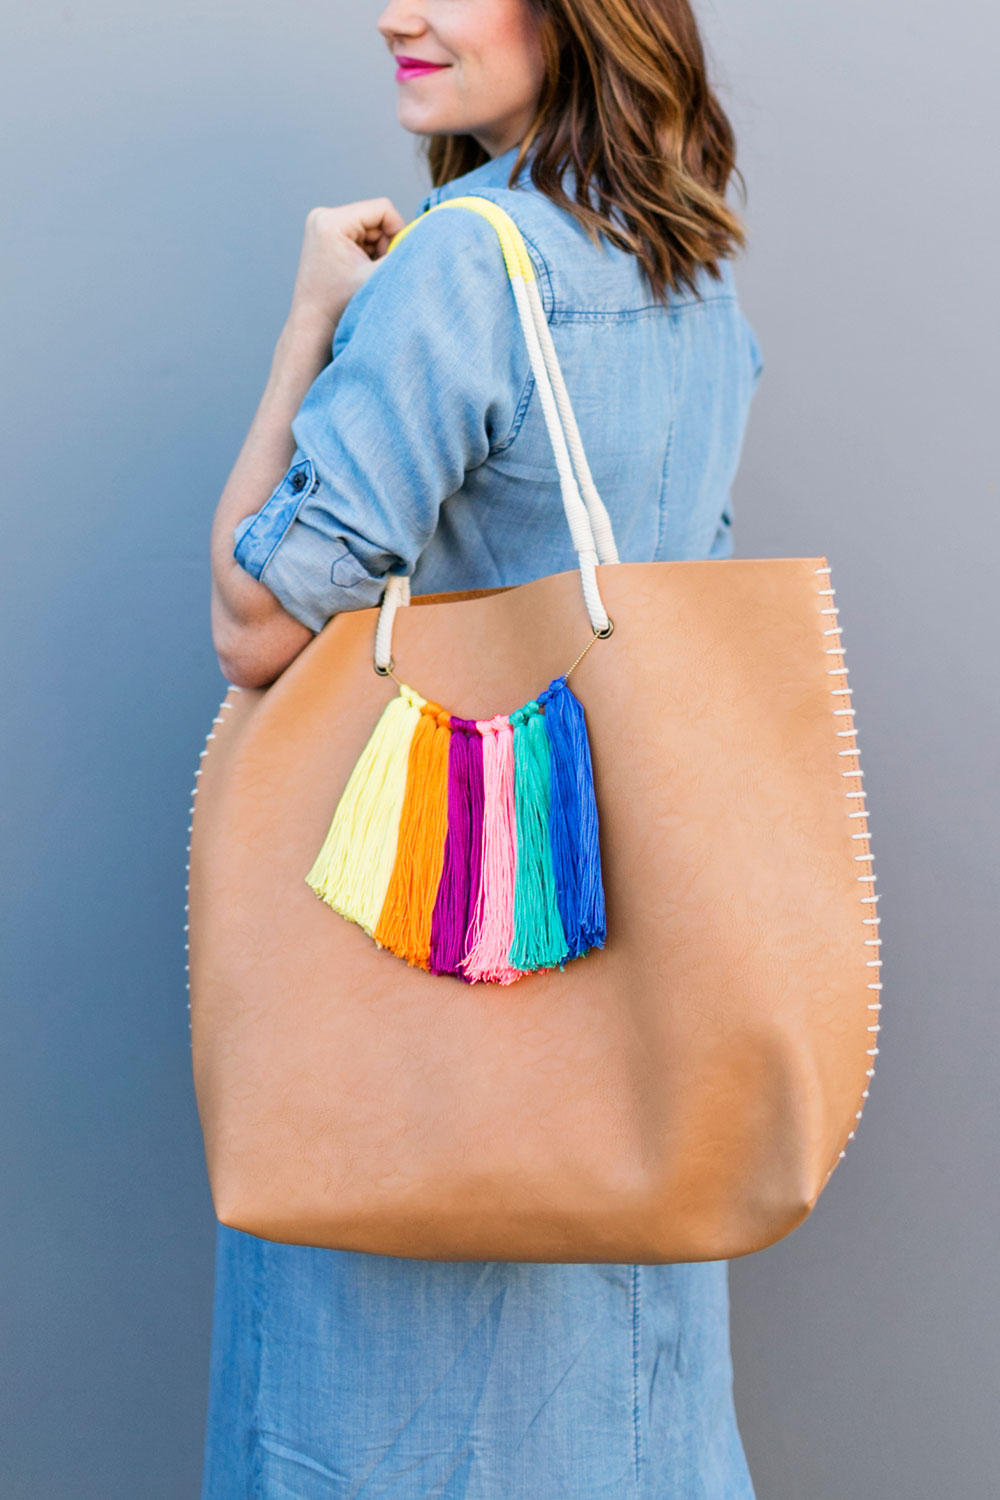 Make-this-fun-easy-tassel-tote-bag-just-in-time-for-summer